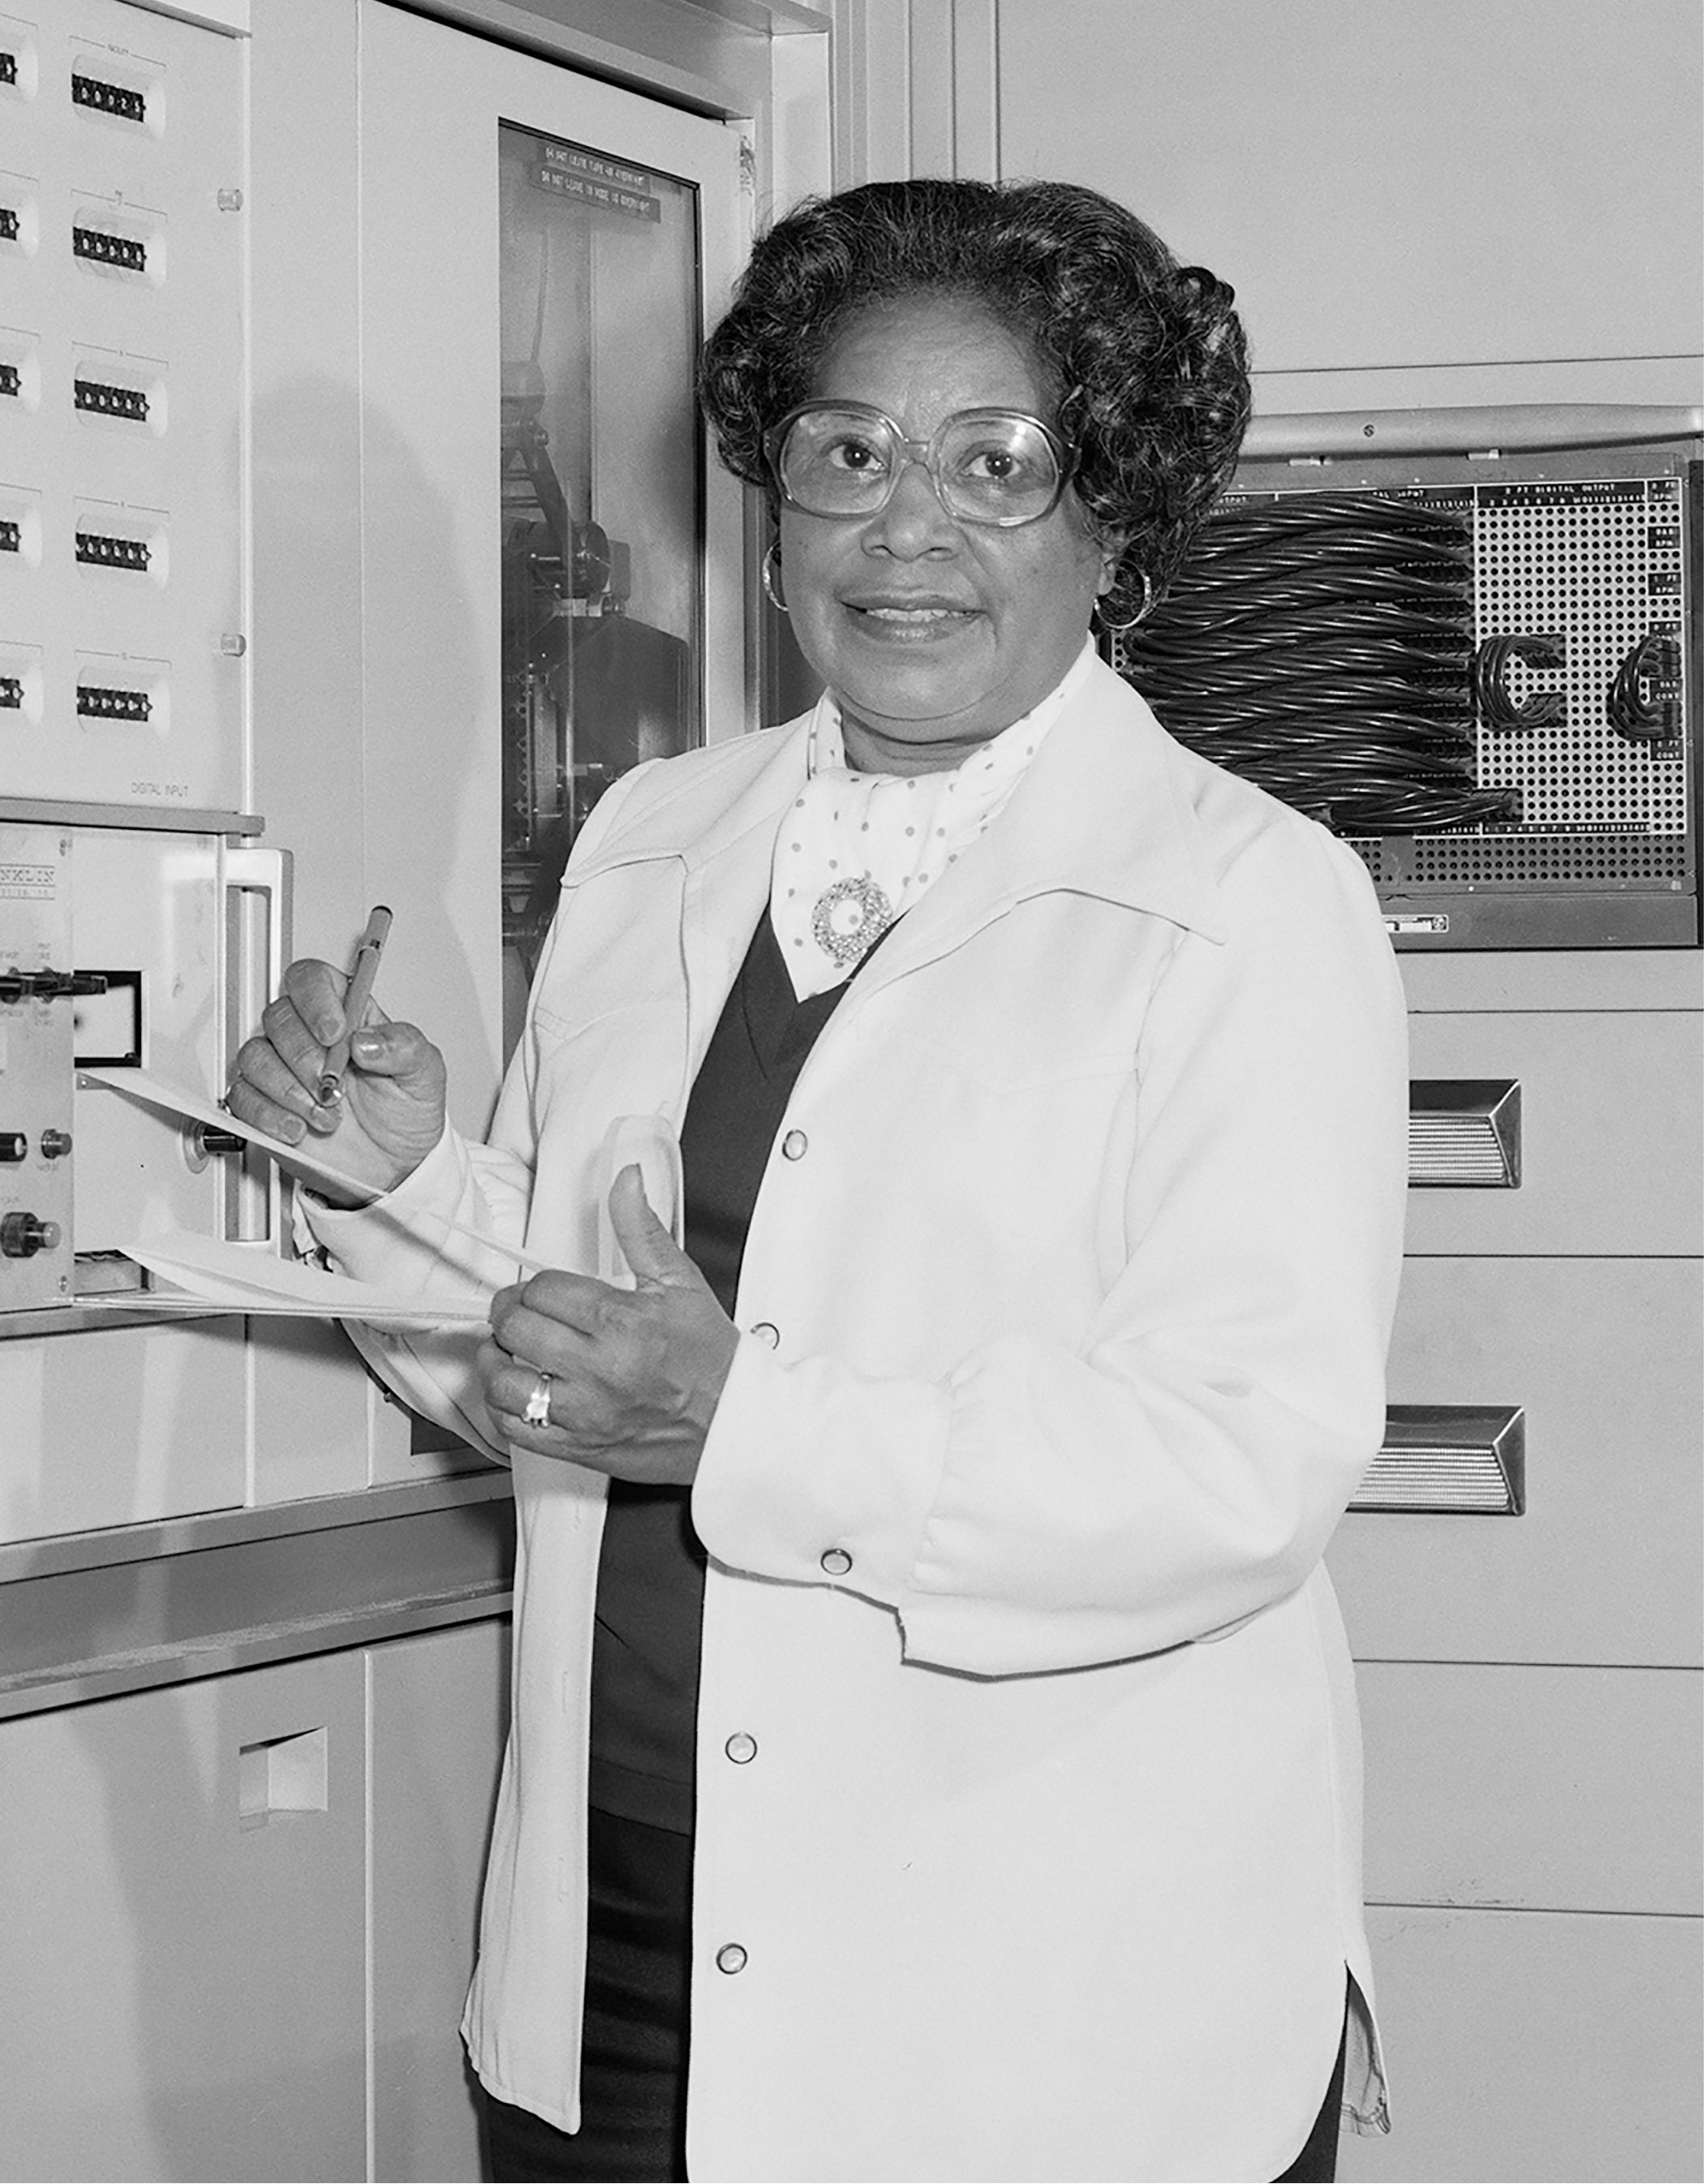 """Mary Jackson was one of the """"human computers"""" portrayed in the film """"Hidden Figures.""""Credit: NASA"""